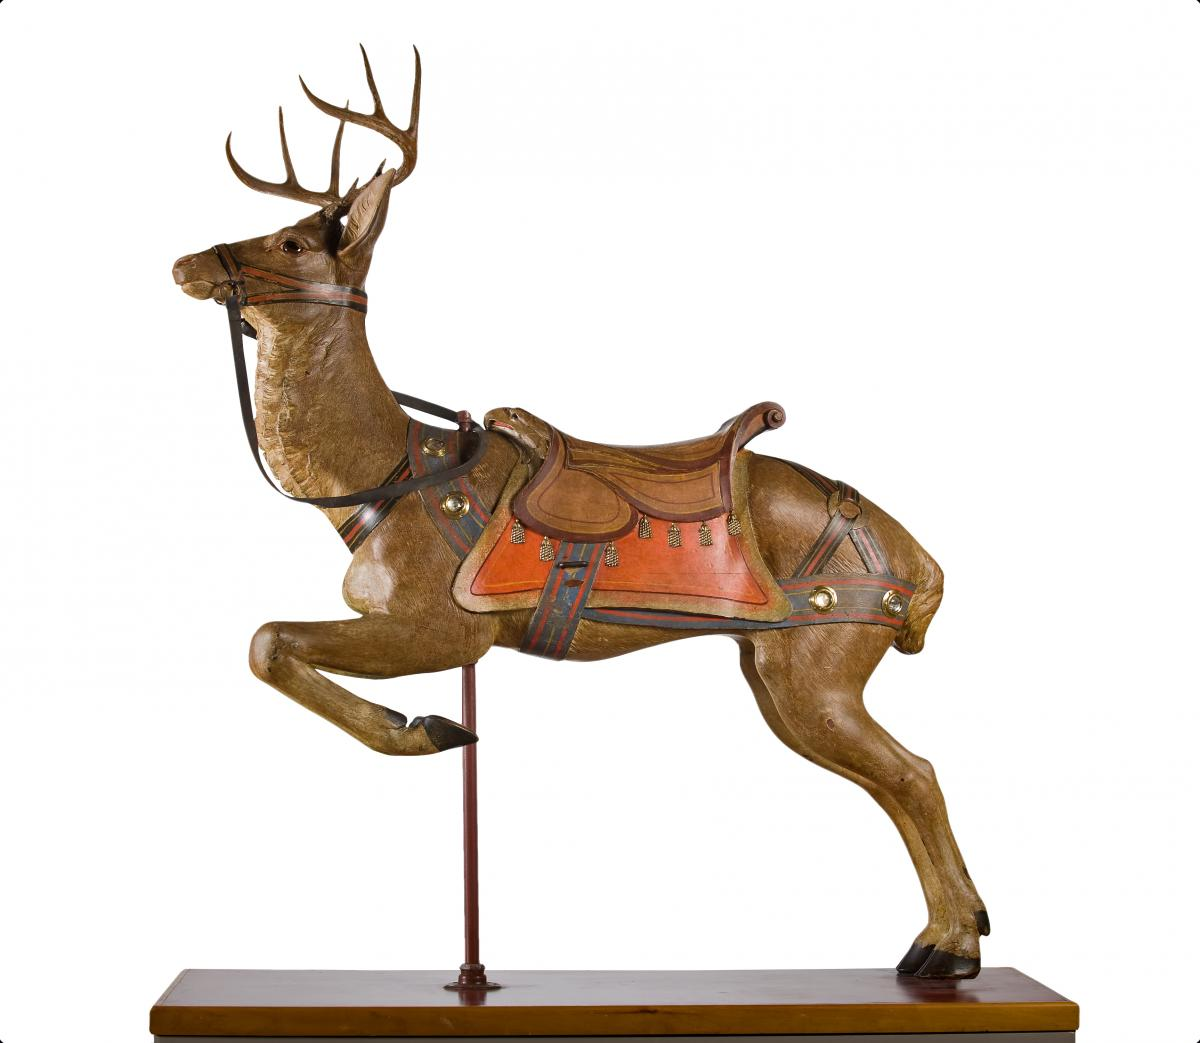 Photograph of a wooden carved deer